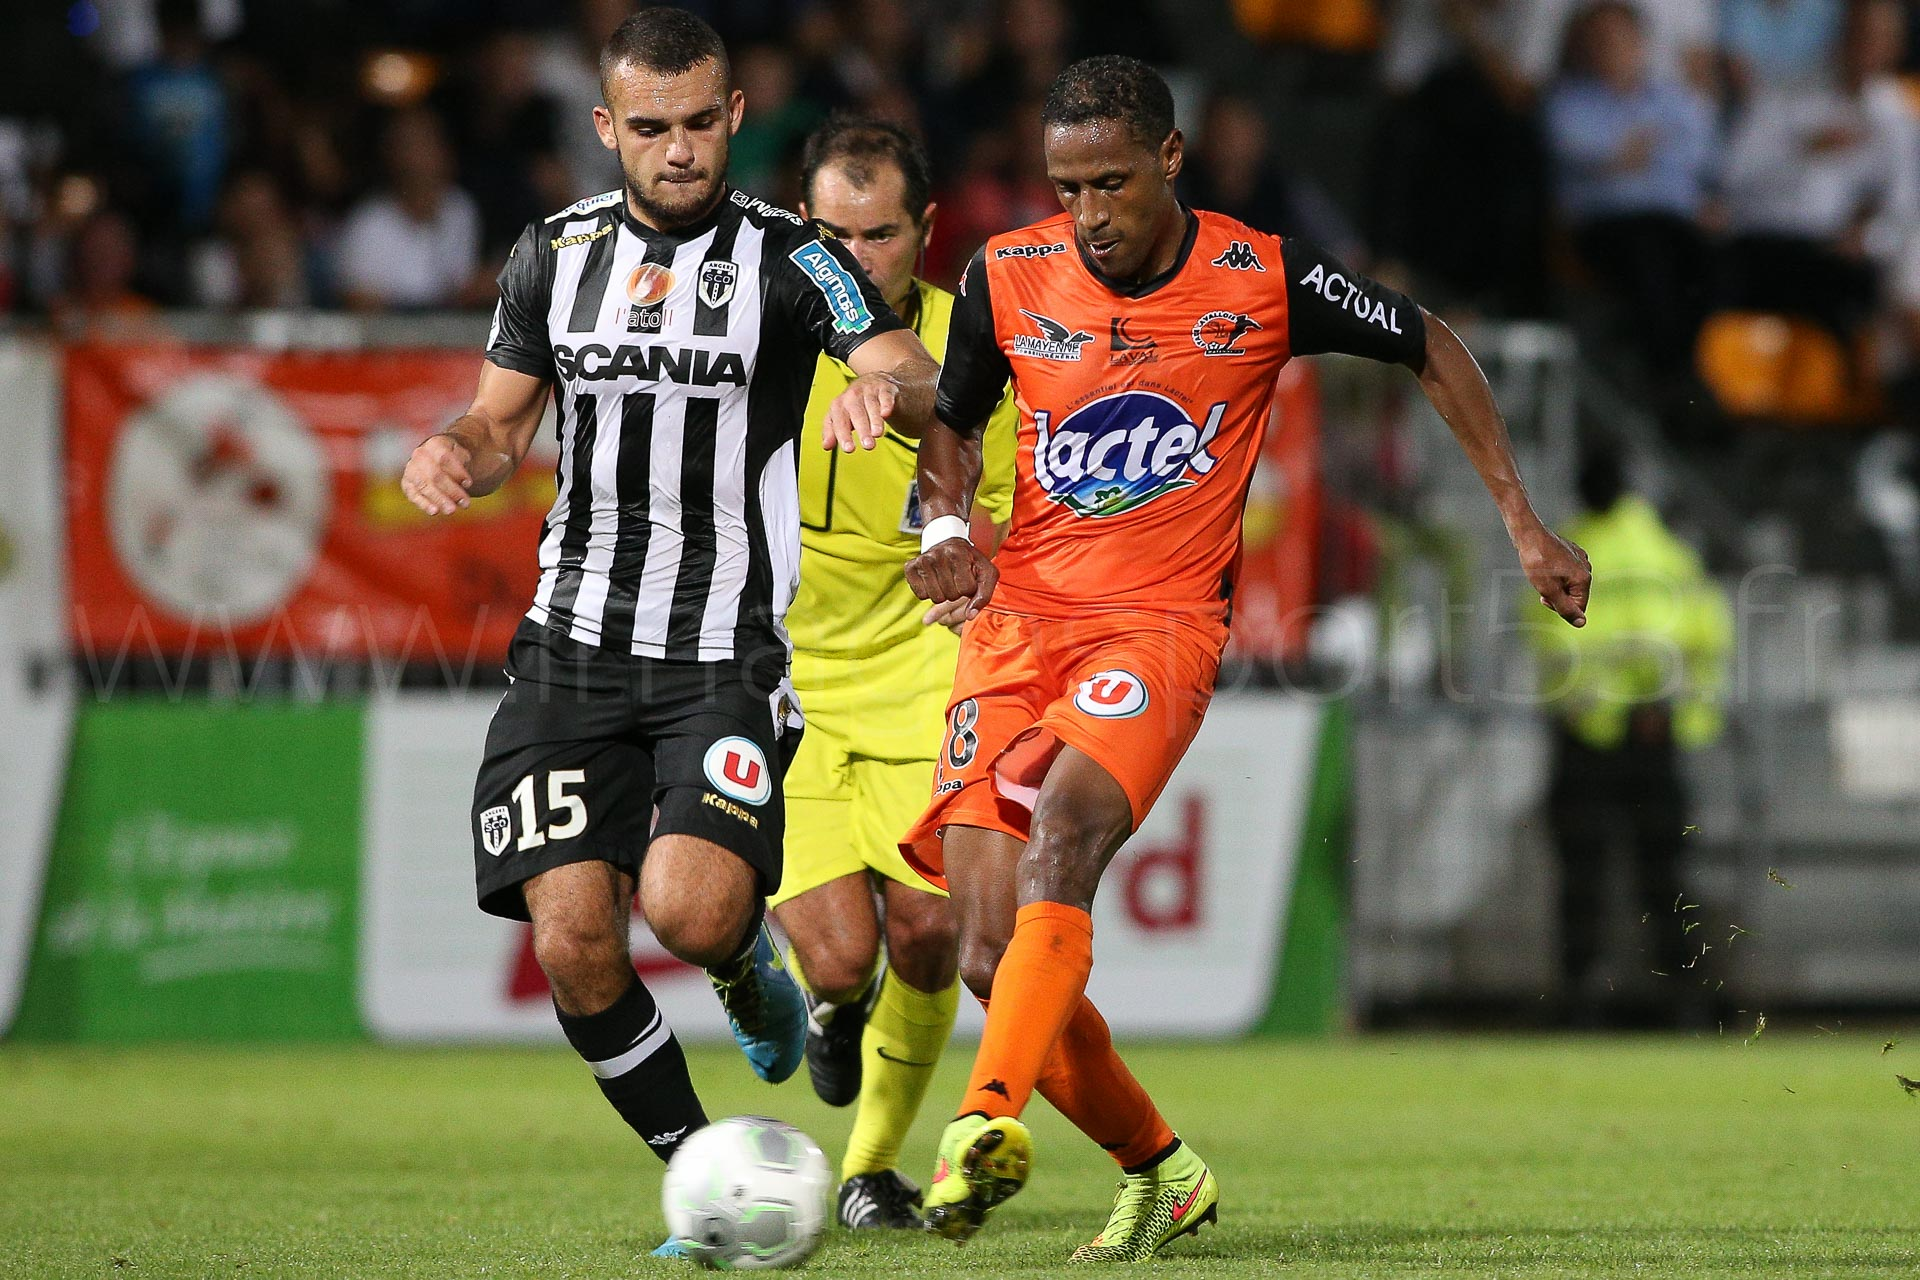 NG-Ligue2-1415-J07-Laval-Angers_11